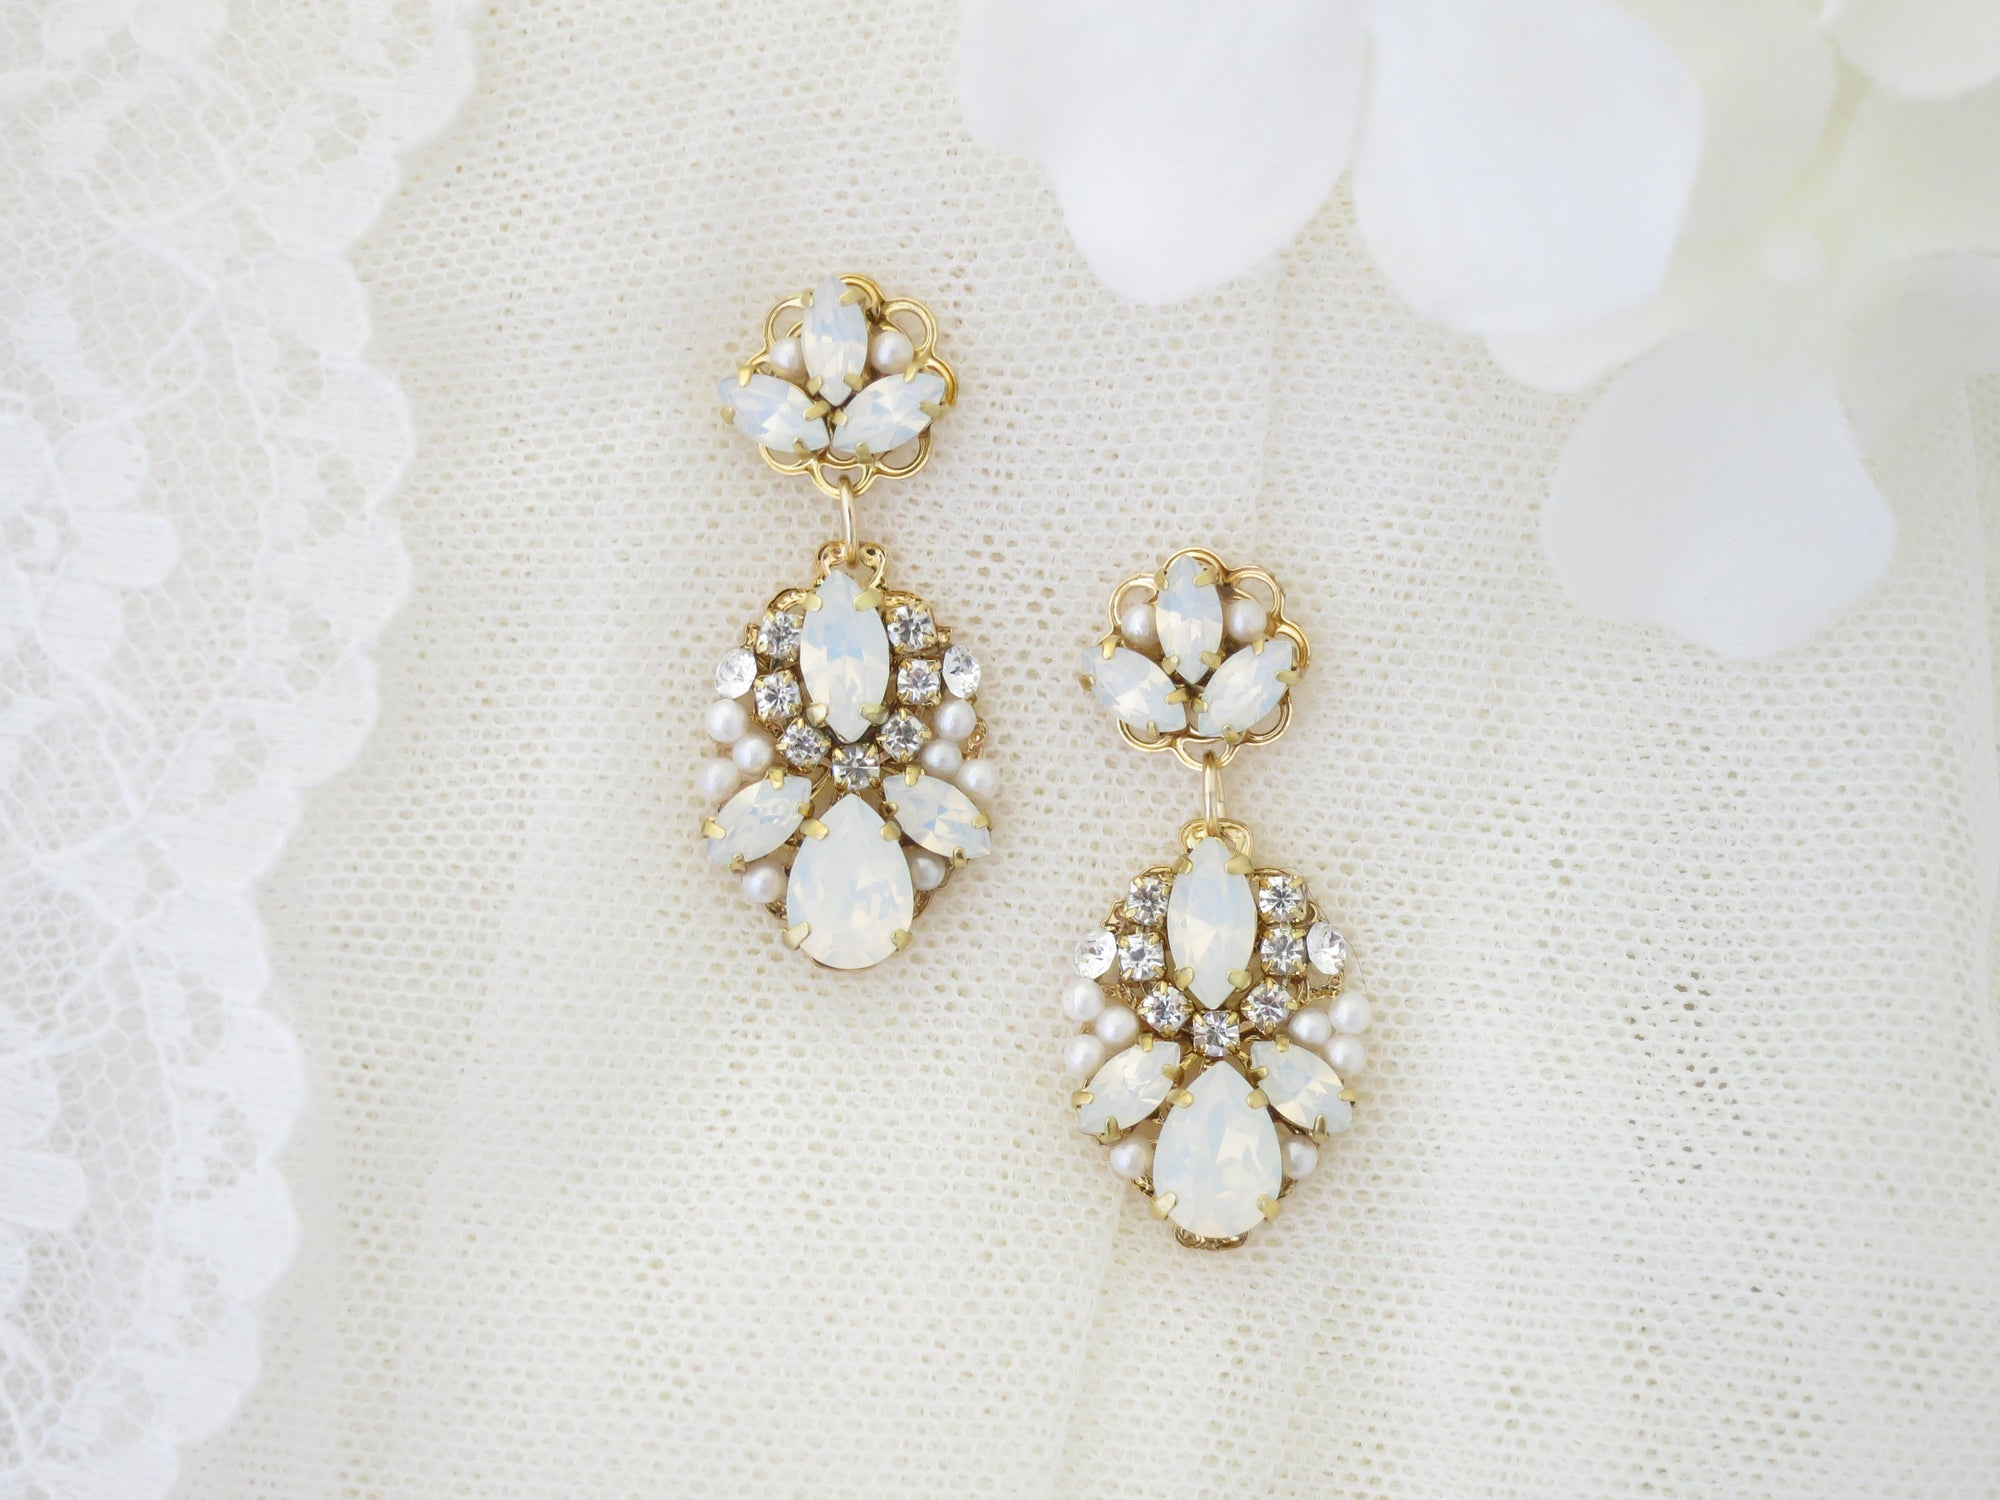 FOREVER:  Enchanting Opal Drop Earrings - BlingBaddaBoom - Minimalist, Vintage, Modern Wedding and Bridal Jewelry